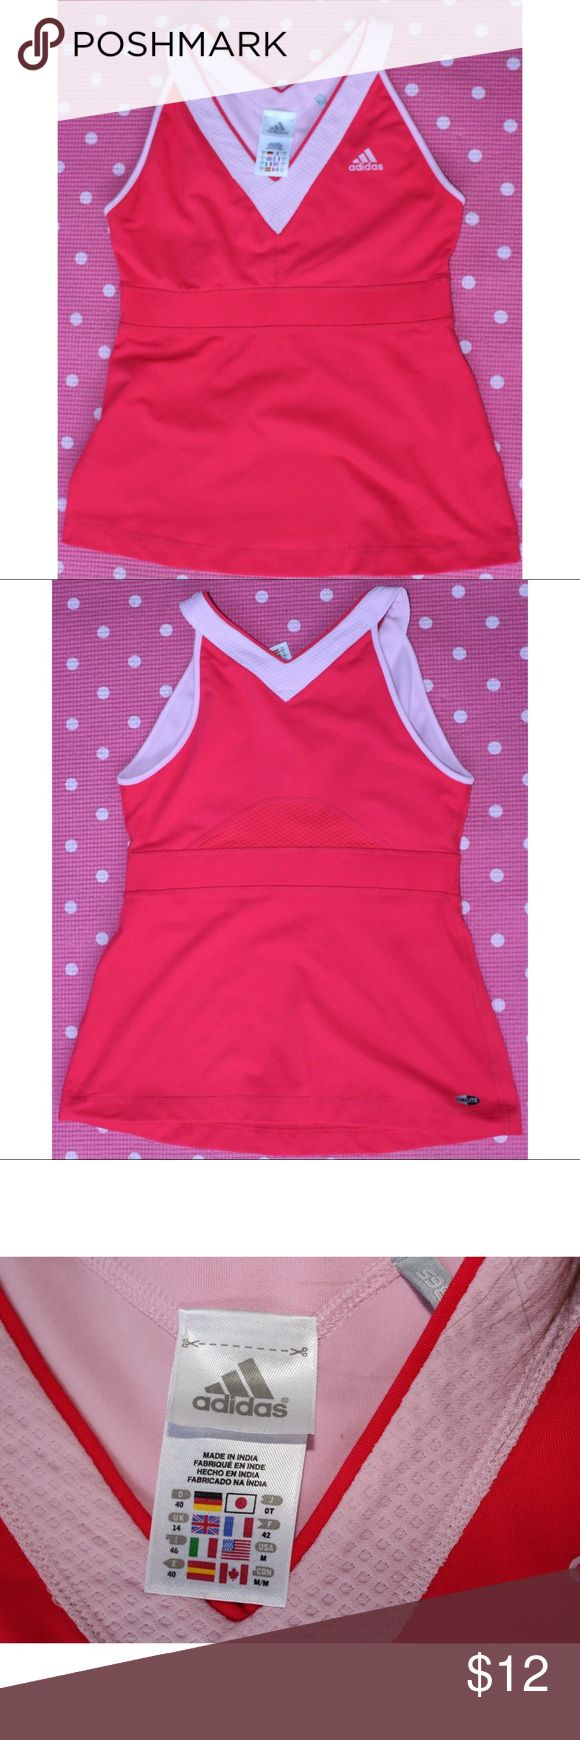 Hot Pink Adidas Racerback Tank In Perfect Condition. Very cute shirt to work out in ☺️🏋️ adidas Tops